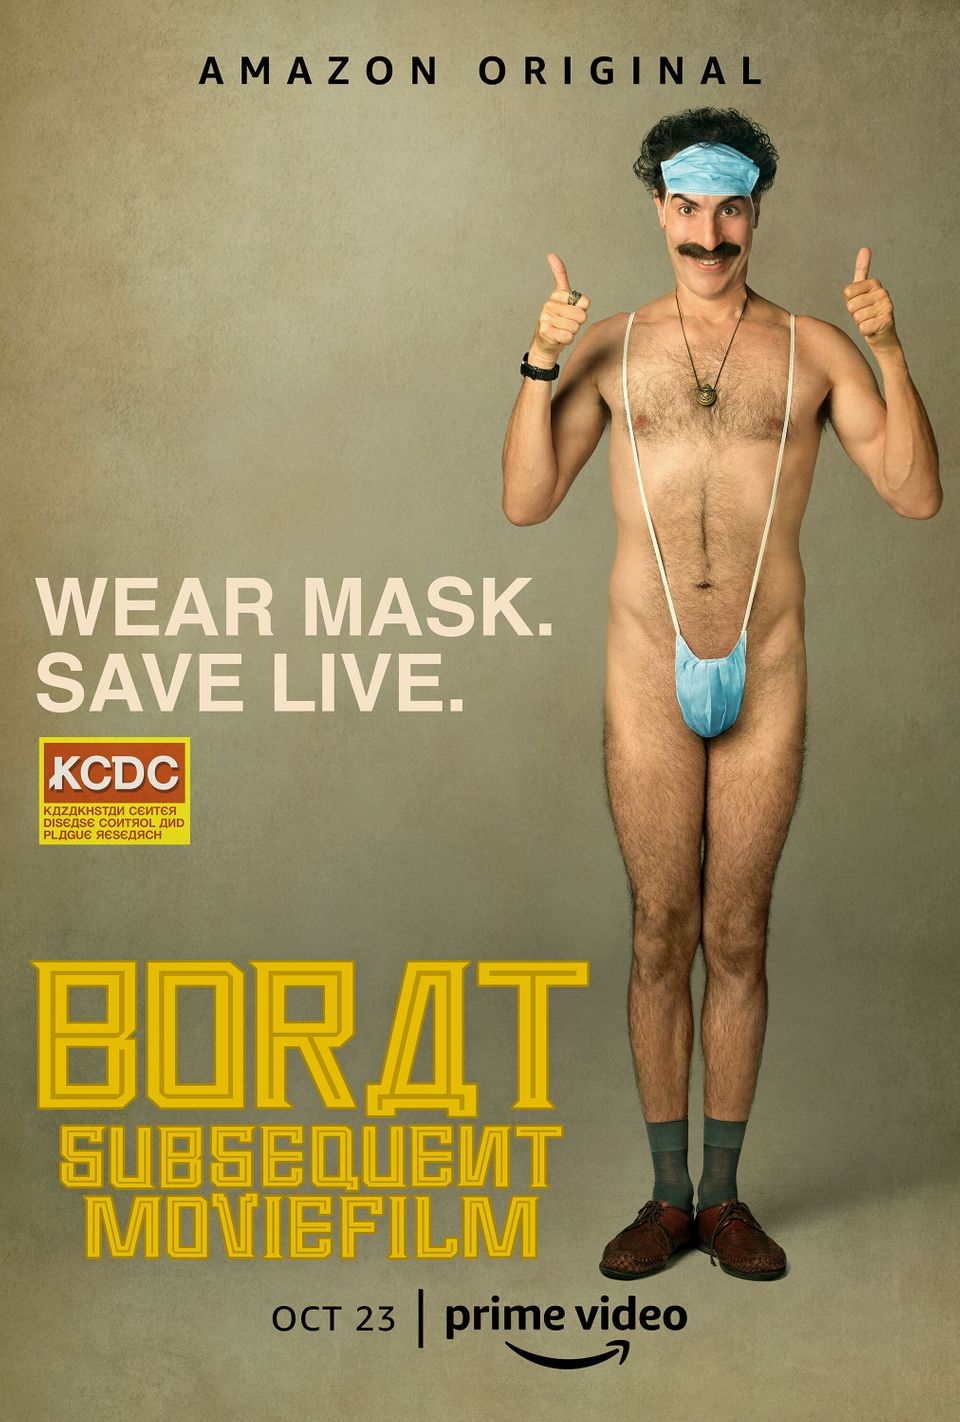 The Borat Subsequent Moviefilm poster